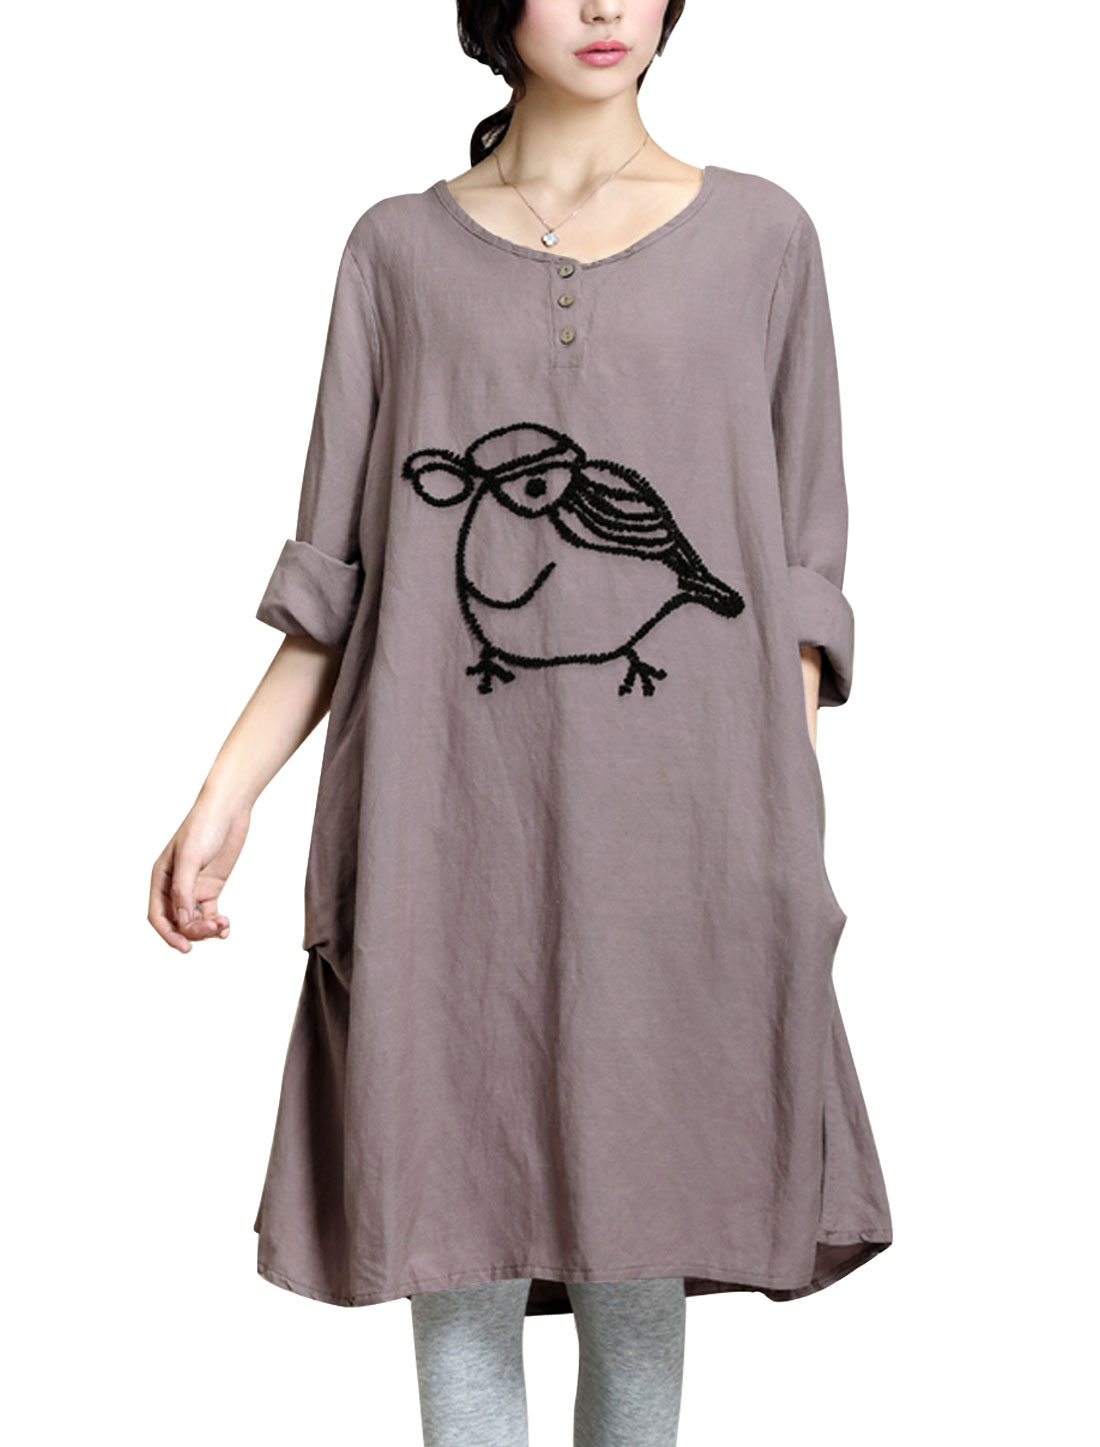 Maternity Round Neck Cartoon Pattern Cozy Fit Straight Dress Lavender L